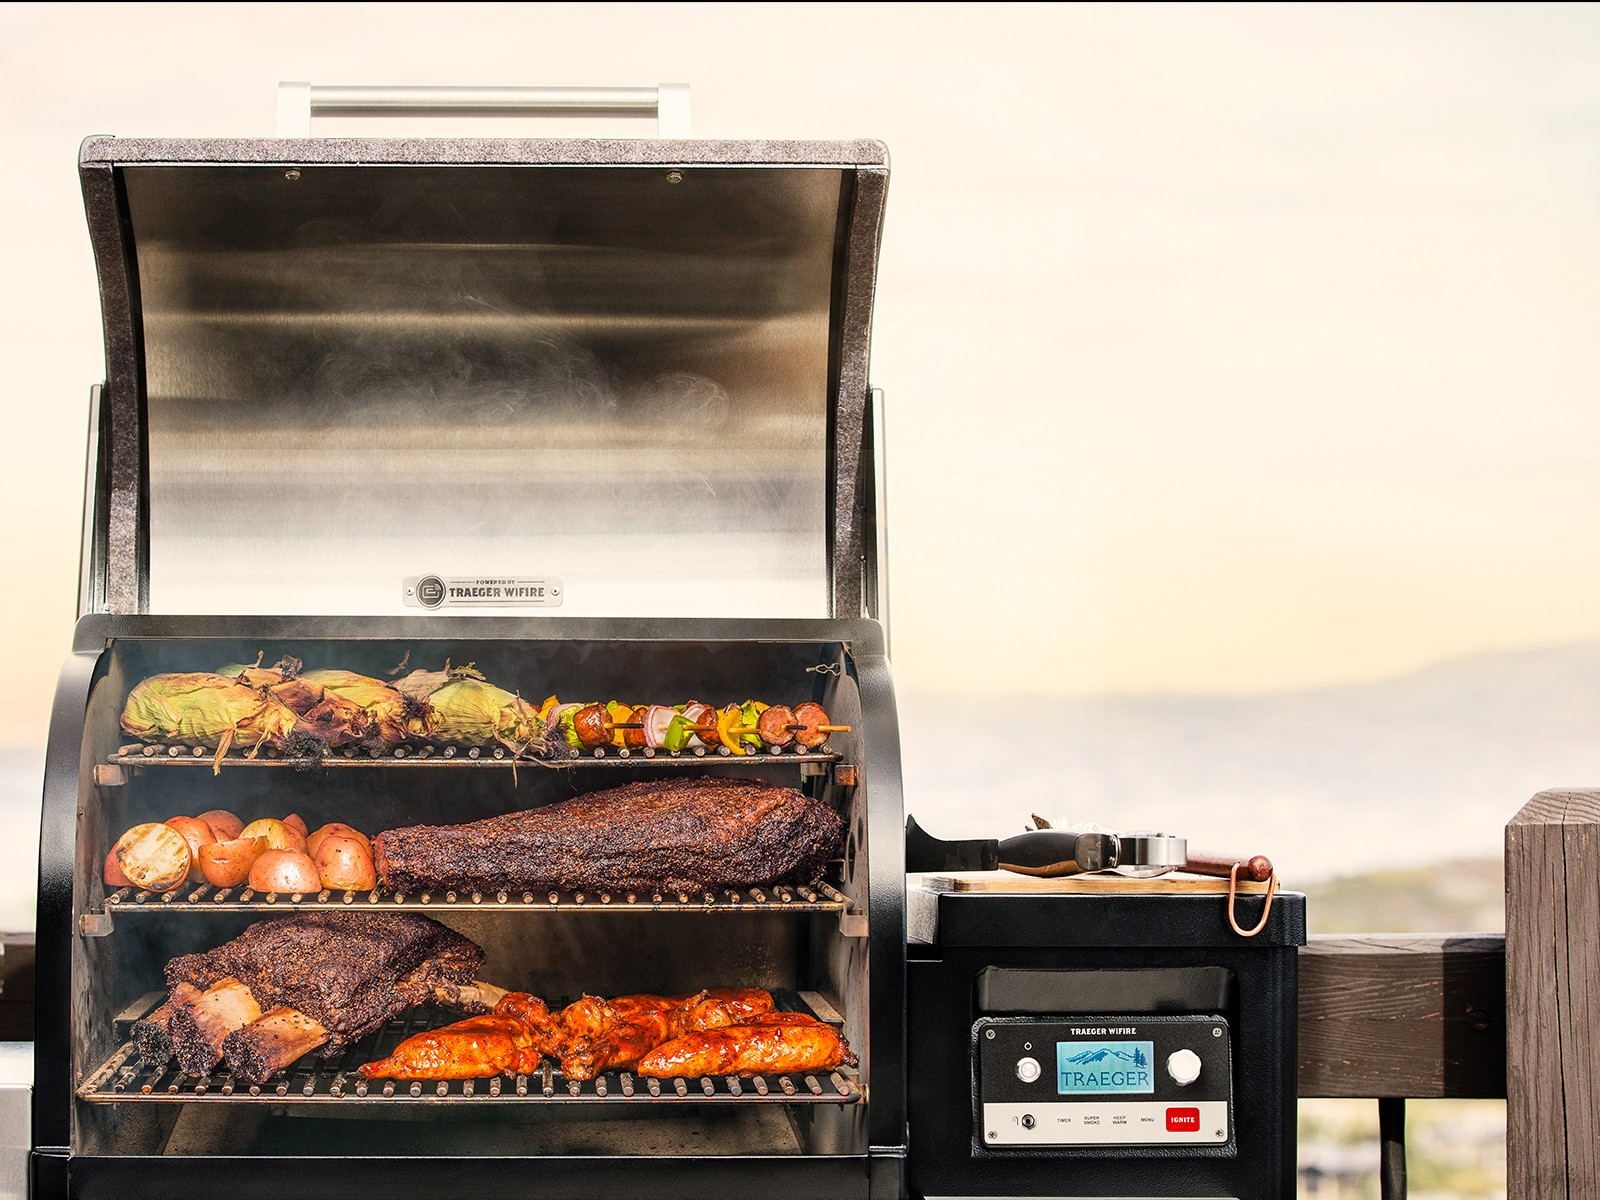 Traeger Grills Electrical Wiring Traeger Timberline Grills & Smokers Of Traeger Grills Electrical Wiring